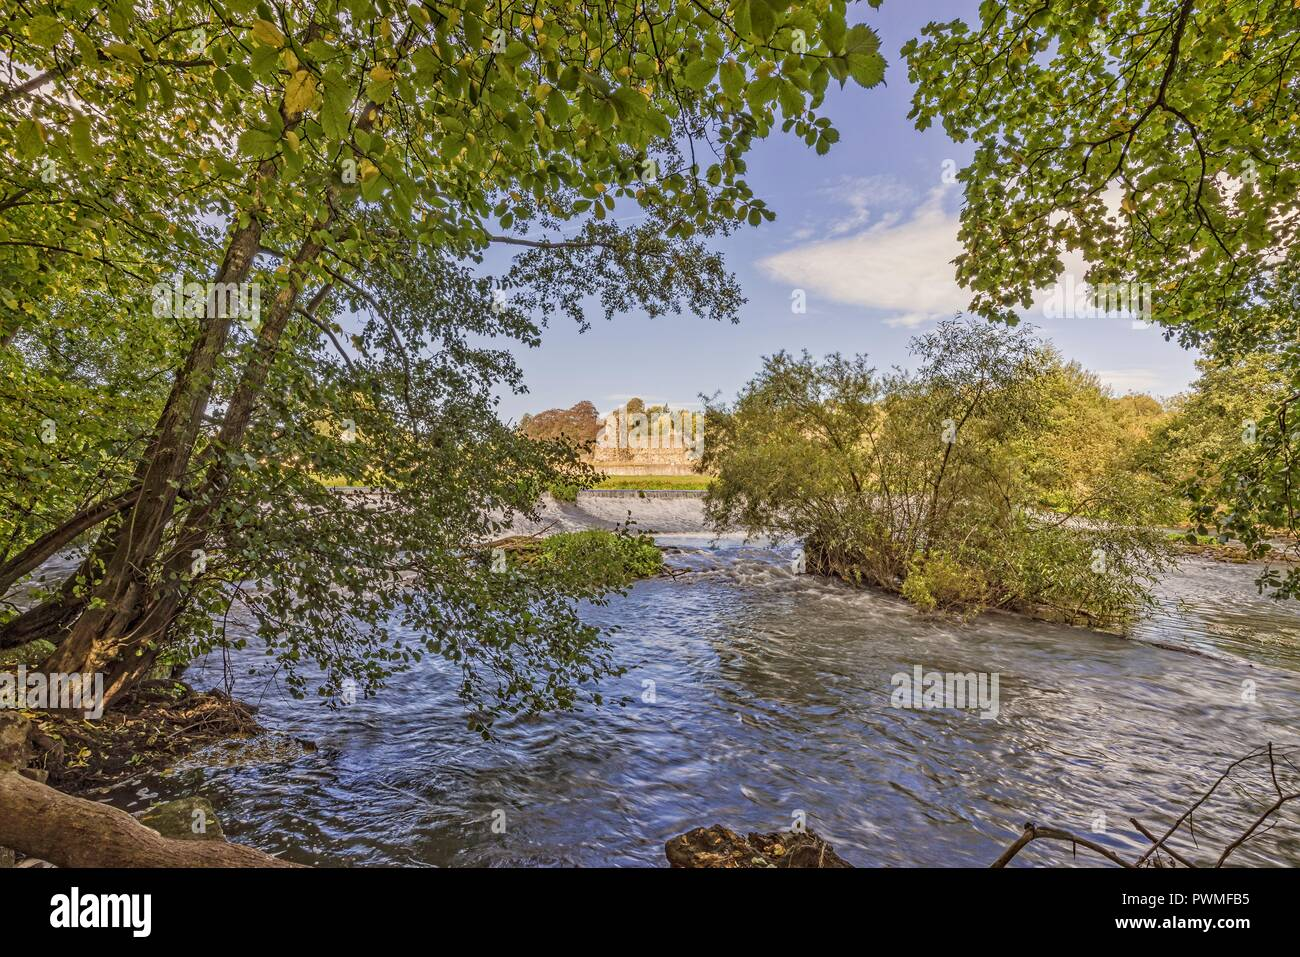 A woodland with the River Derwent flowing downstream from a weir.  The old monastery ruins of Kirkham Priory can be seen in the distance. Stock Photo